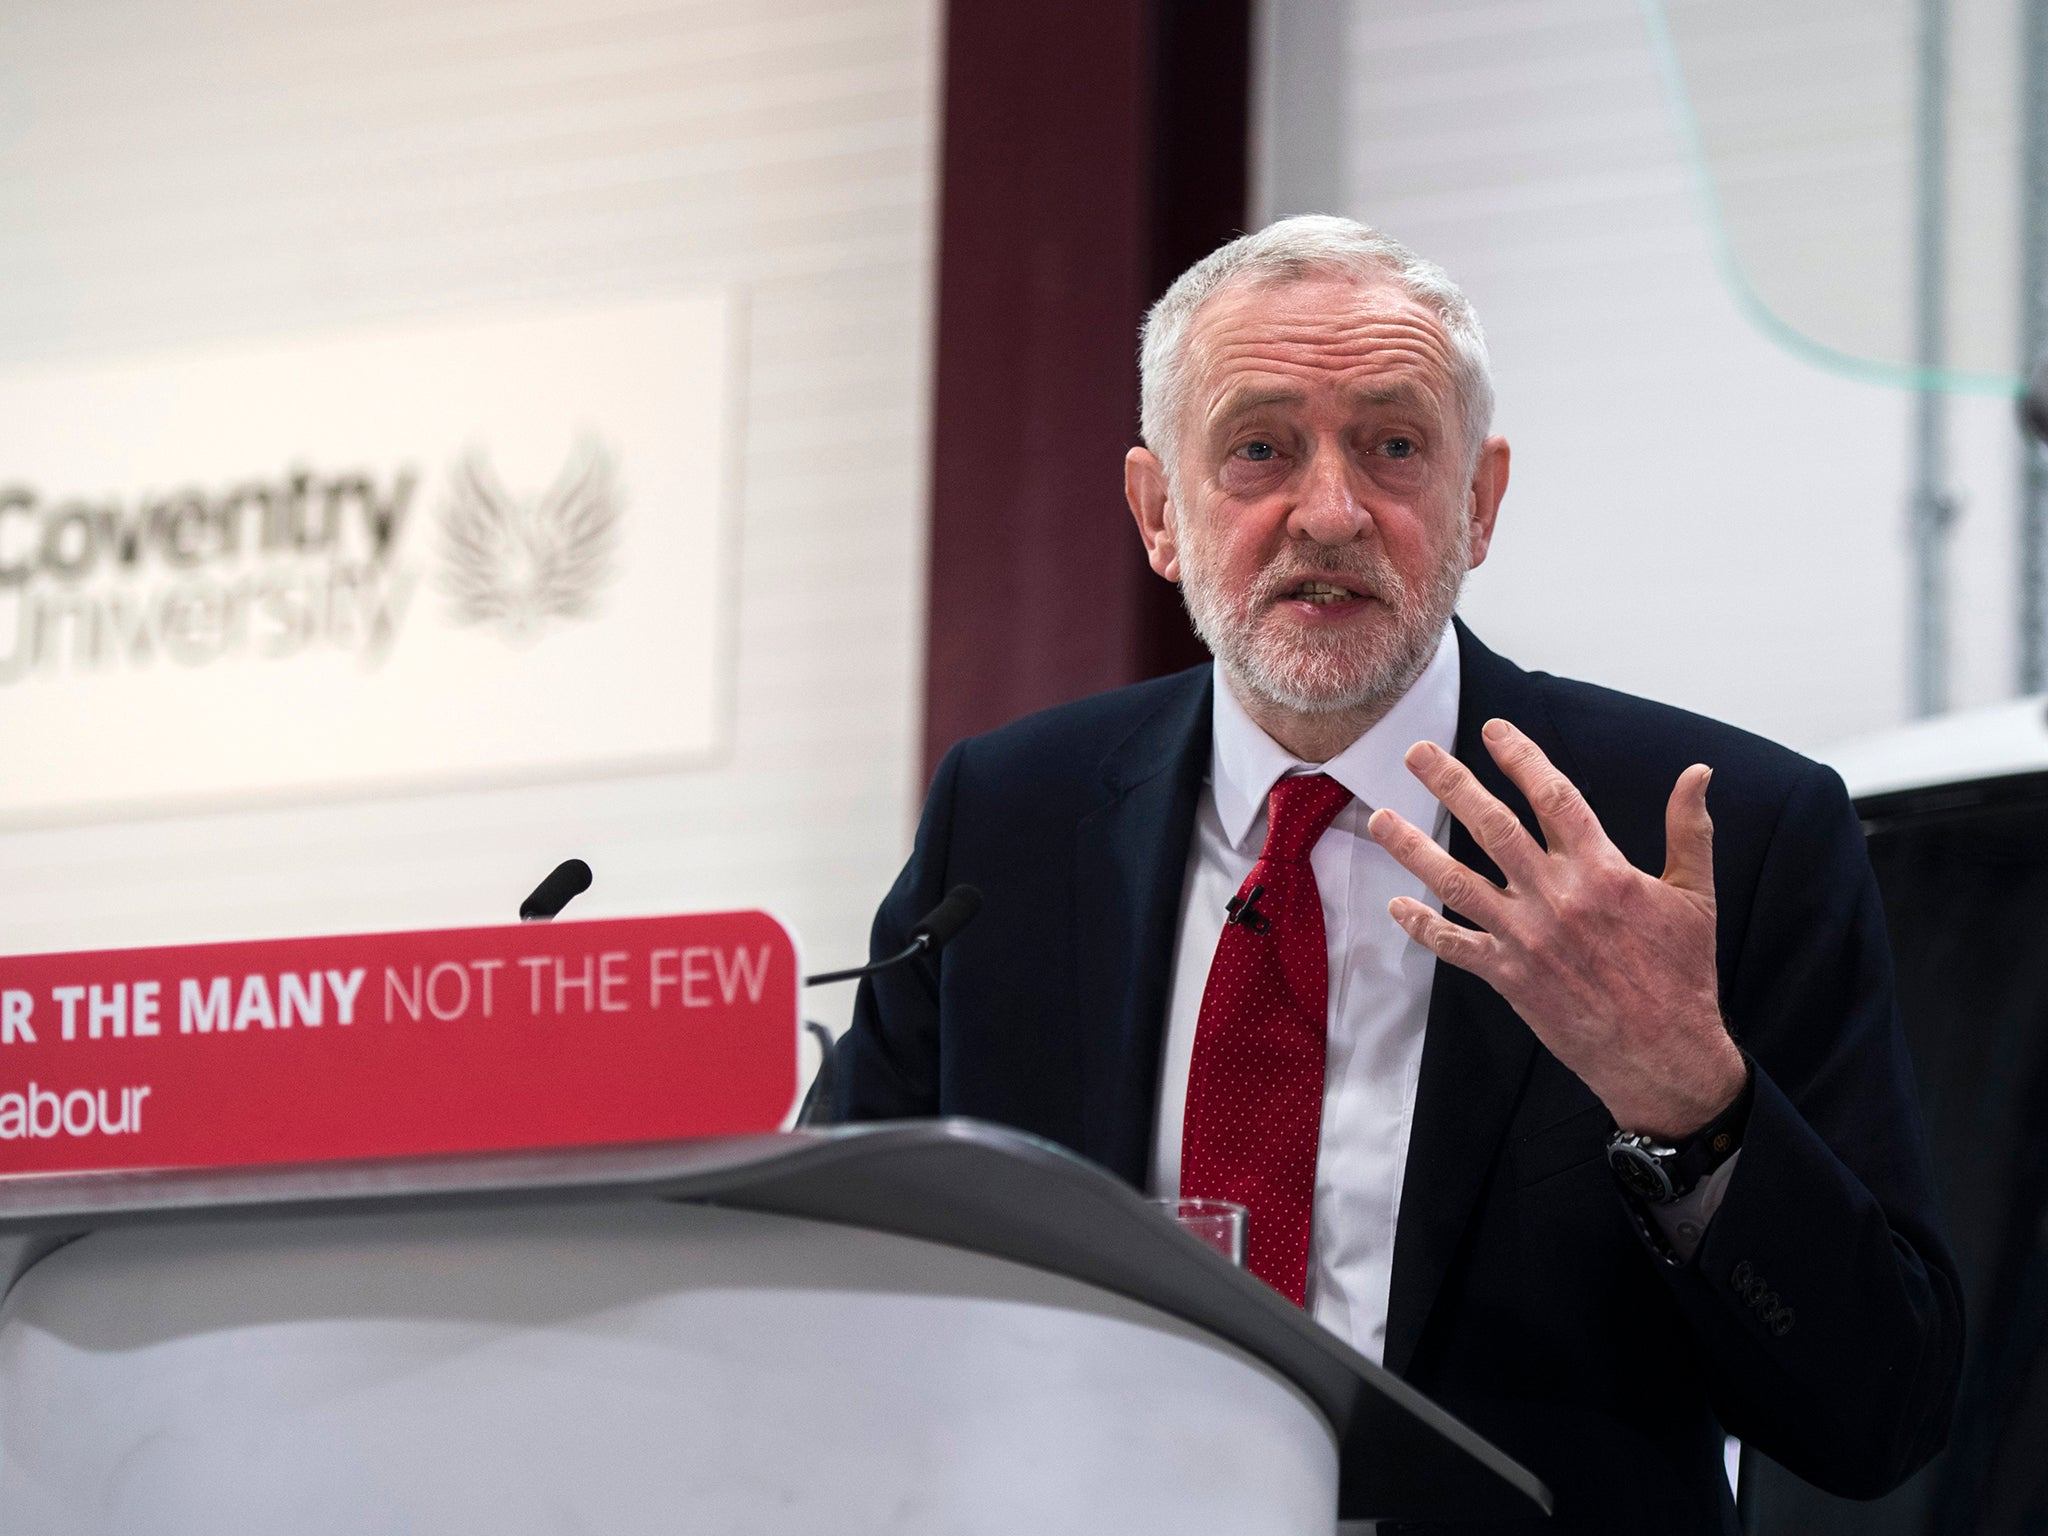 Business bodies throw support behind Corbyn's calls to keep customs union after Brexit